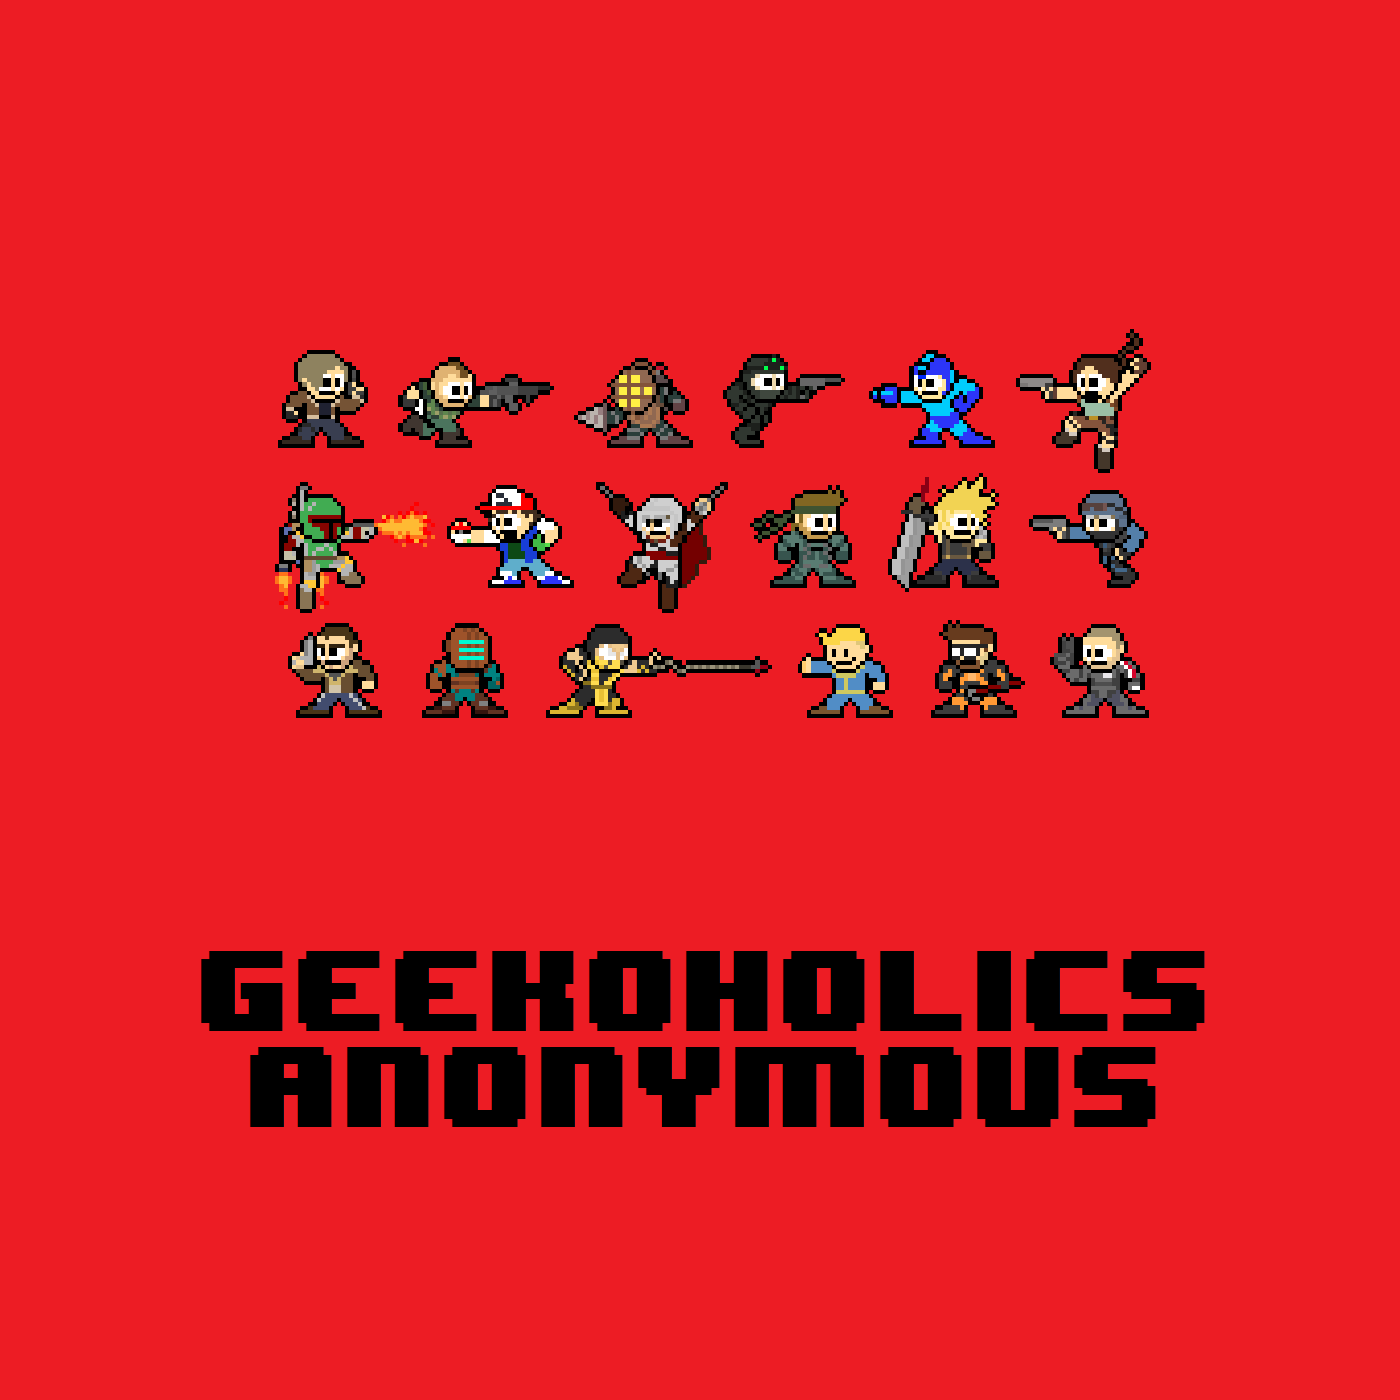 Genshin Impact, Star Wars Squadrons, Crash Bandicoot 4 and more - Geekoholics Anonymous Podcast 275 show art